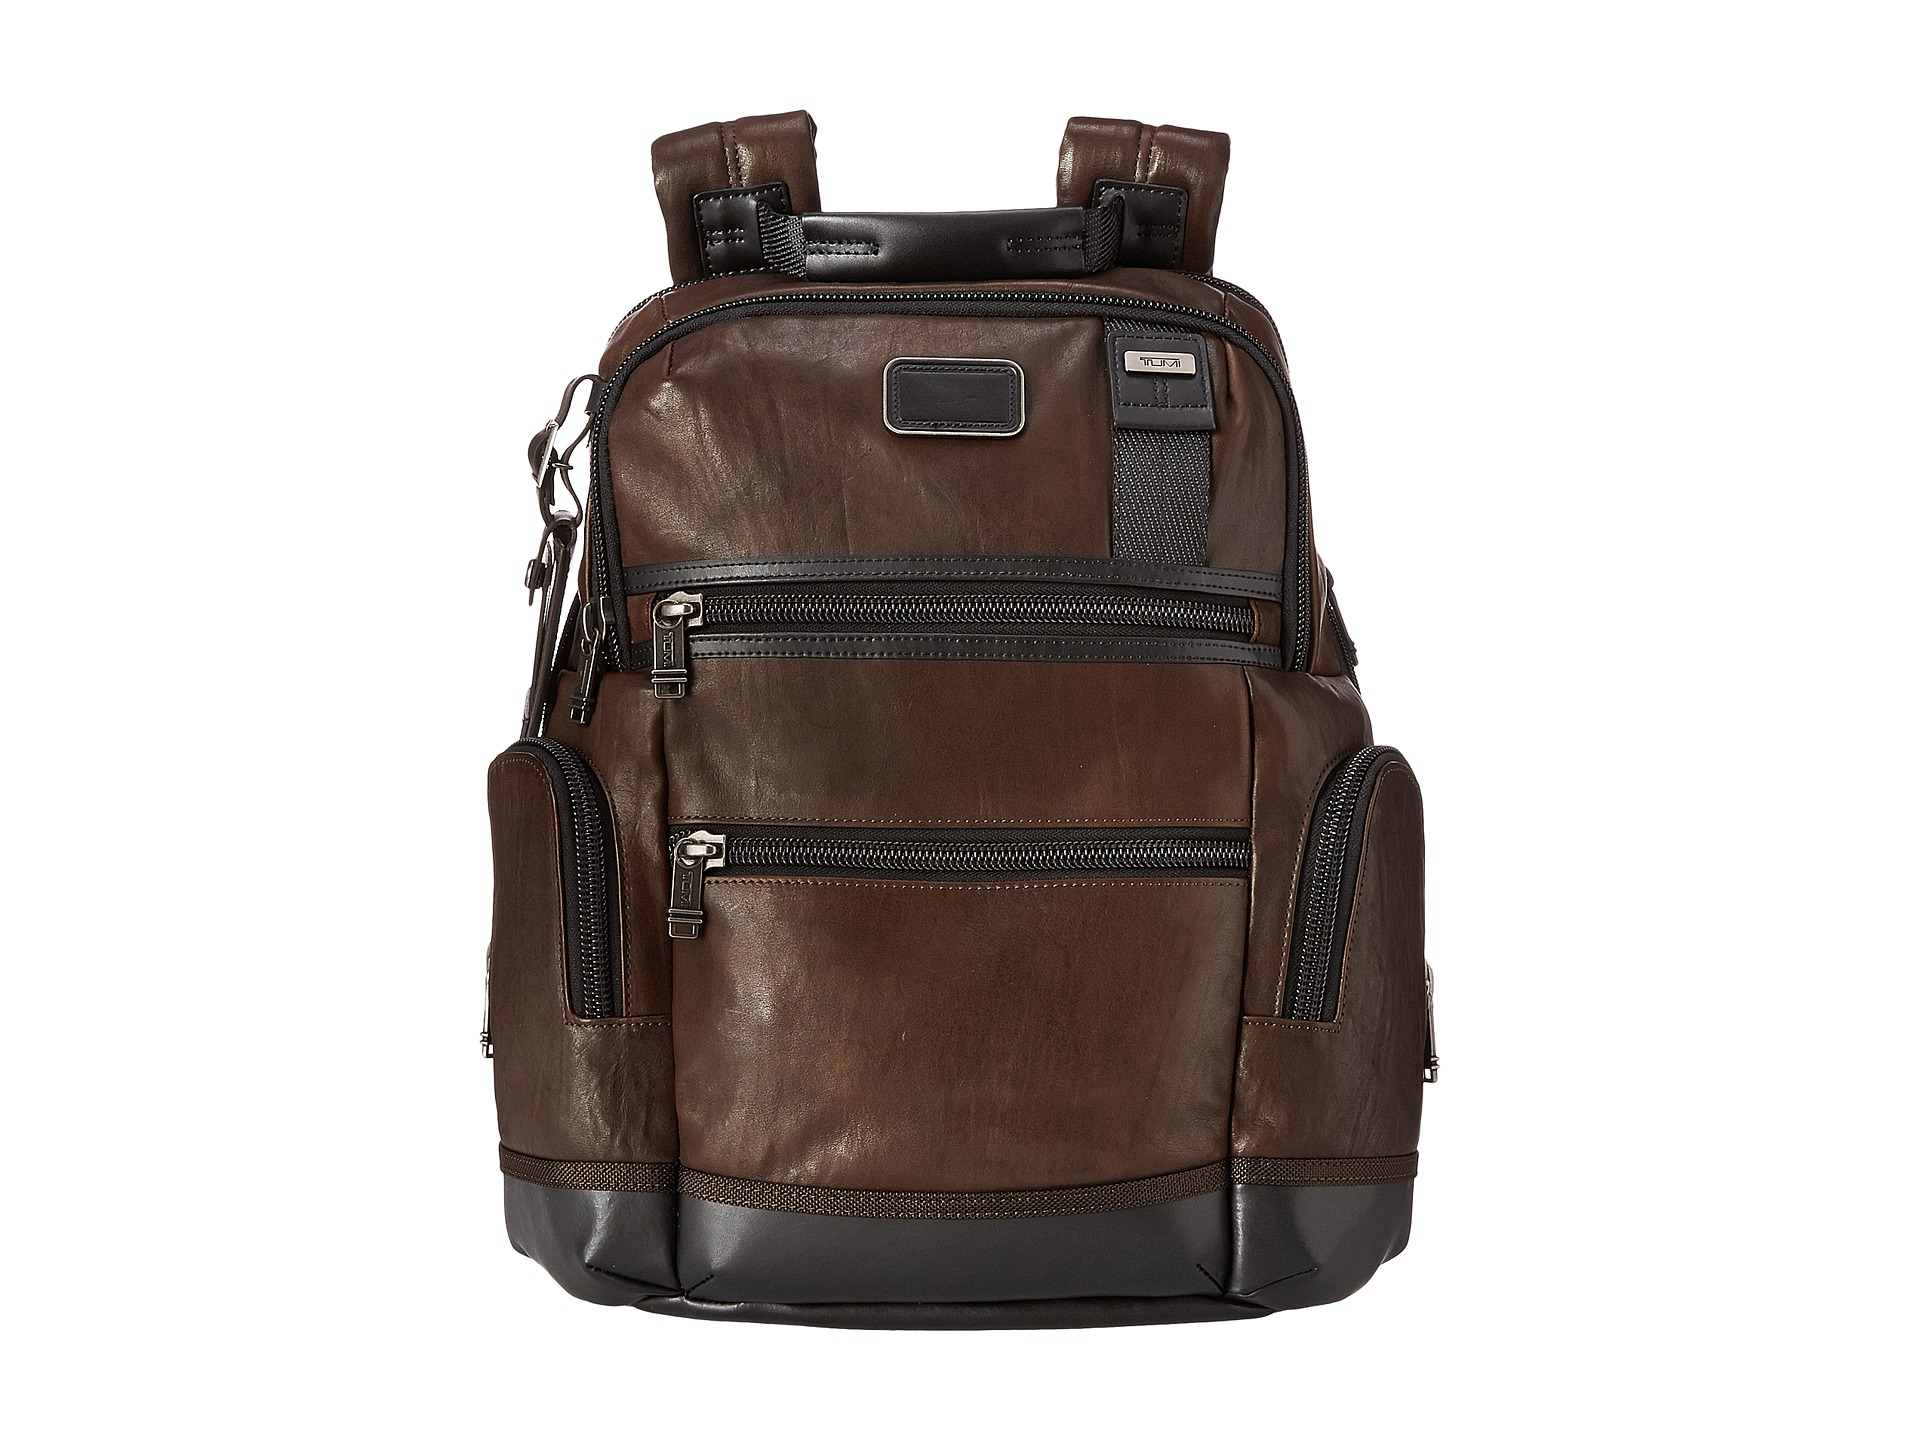 Tumi alpha bravo knox leather backpack zappos com free shipping